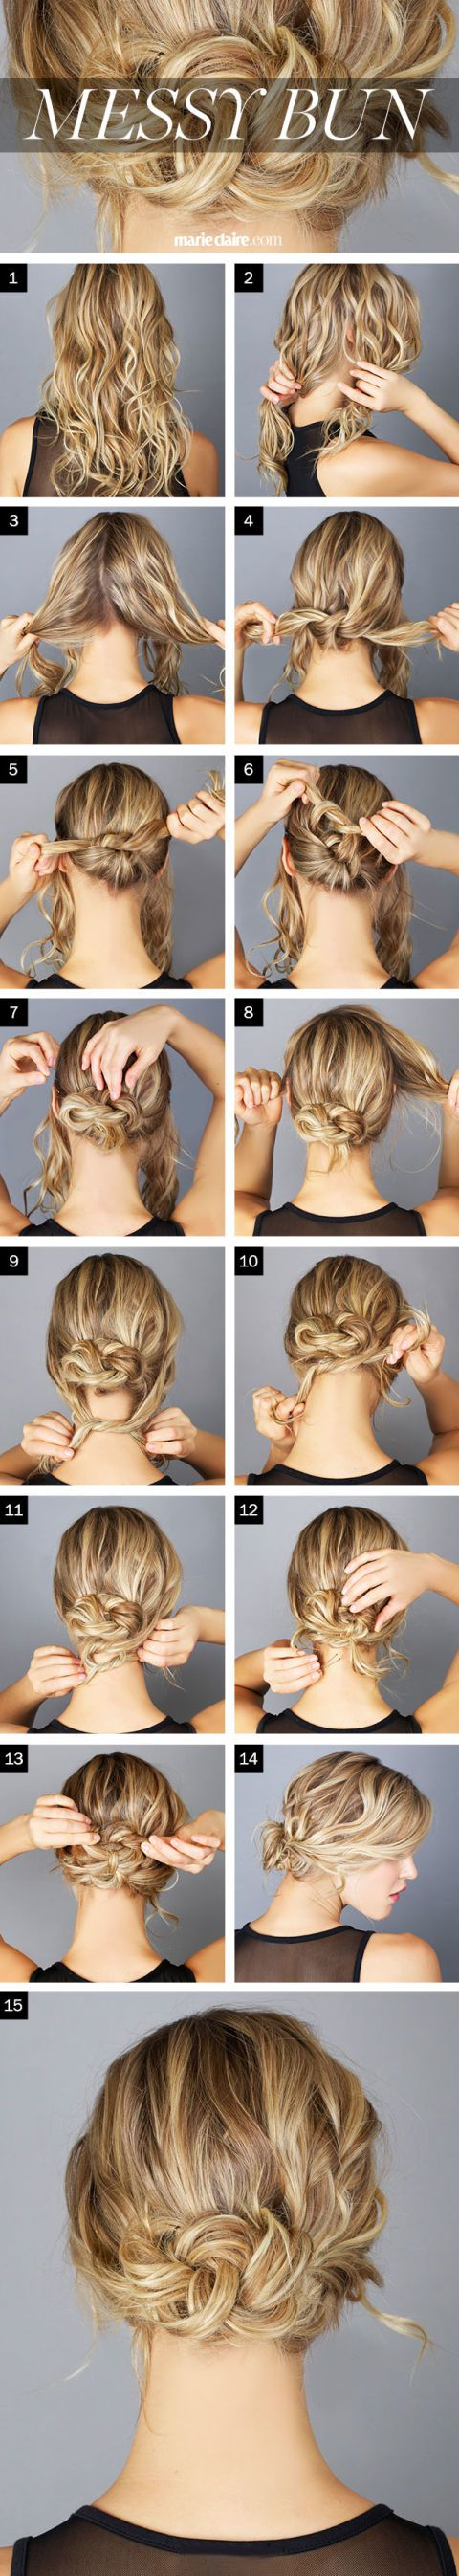 Easy Bun Hairstyles for the Messy Look